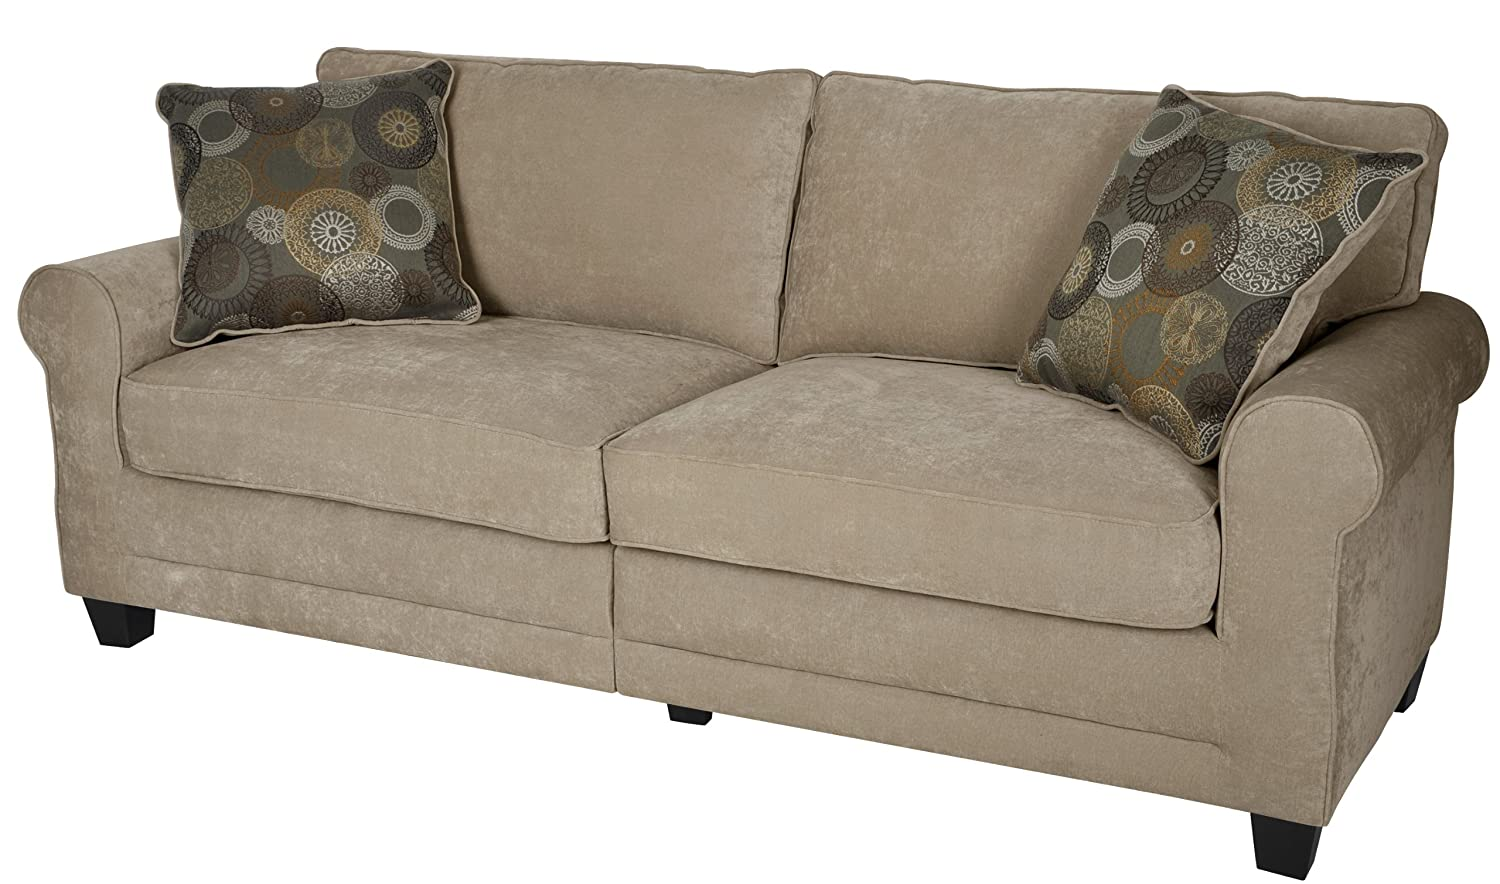 Serta® RTA Copenhagen Collection 72 Sofa in Marzipan - CR43536PB